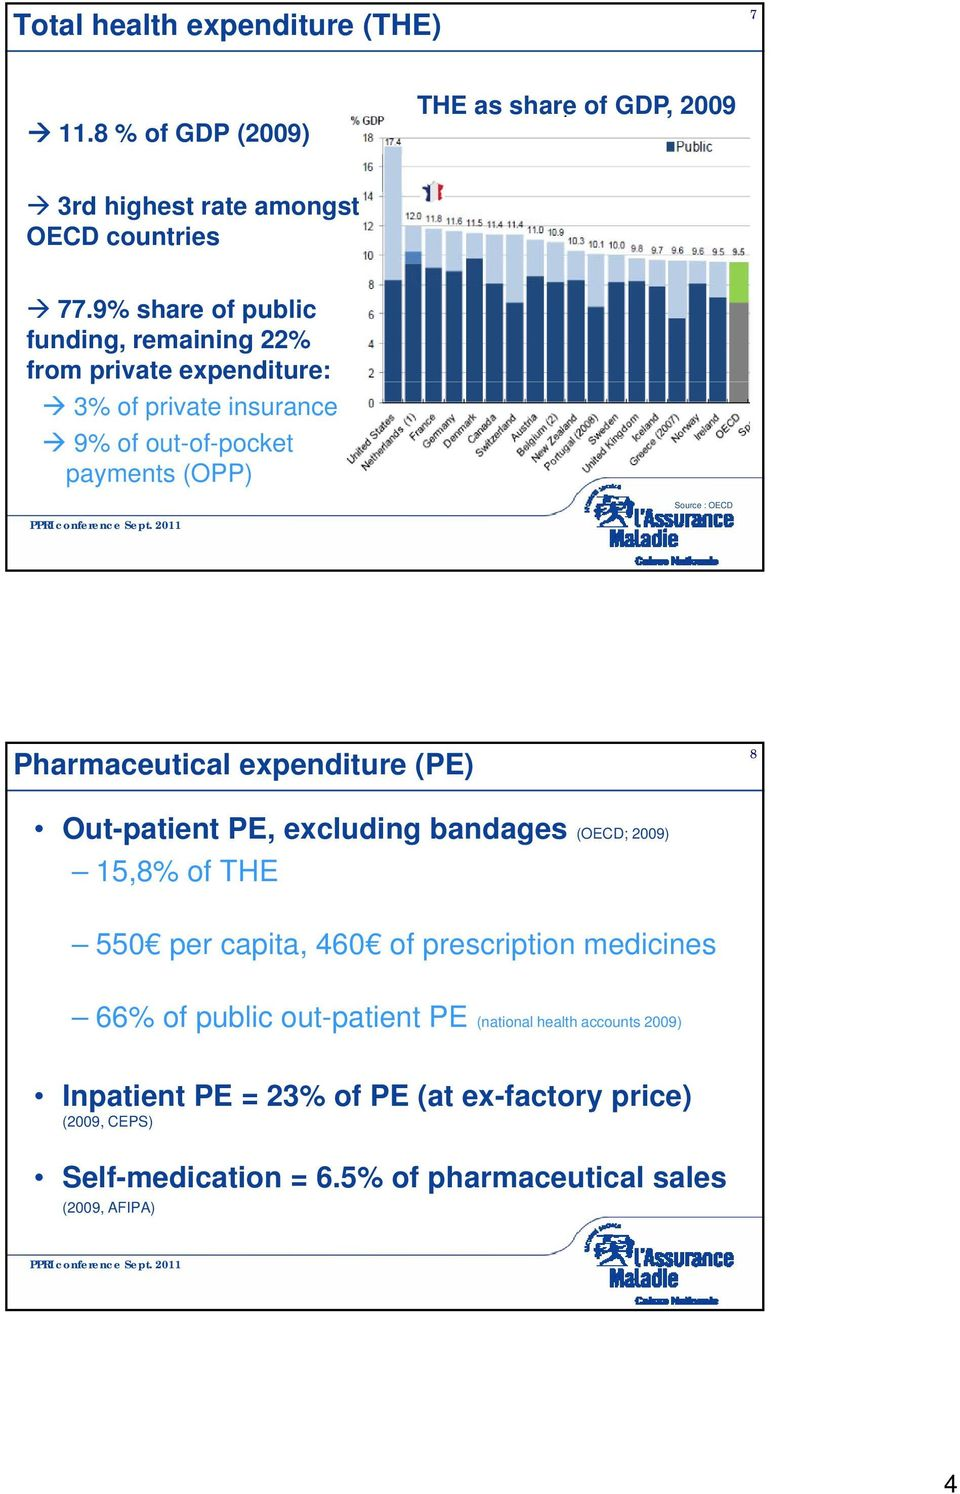 Pharmaceutical expenditure (PE) 8 Out-patient PE, excluding bandages (OECD; 2009) 15,8% of THE 550 per capita, 460 of prescription medicines 66%